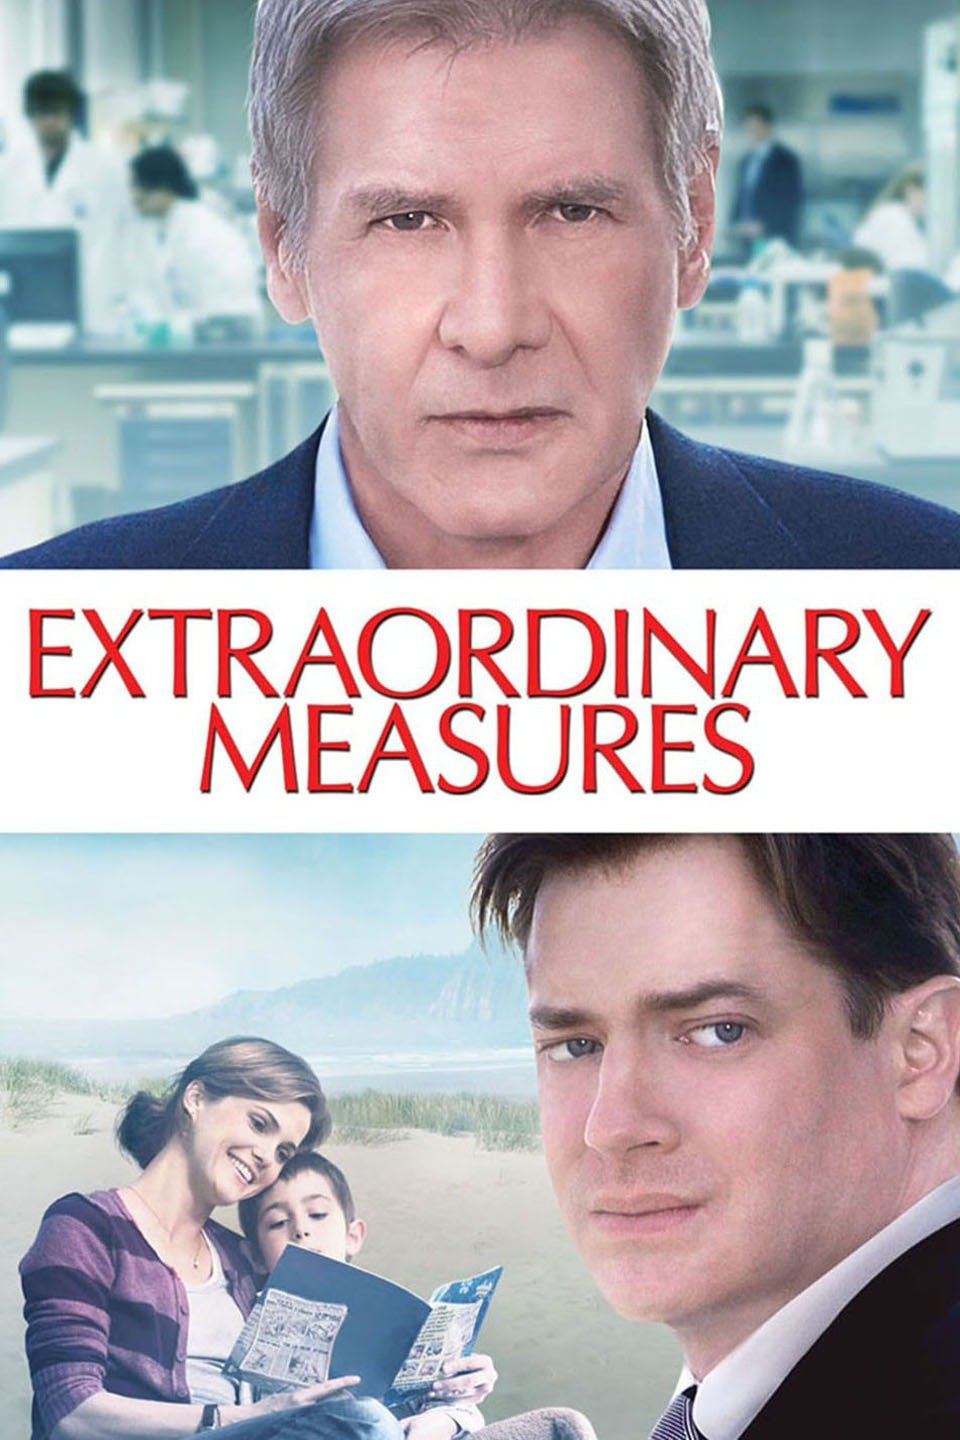 Extraordinary Measures, 2010